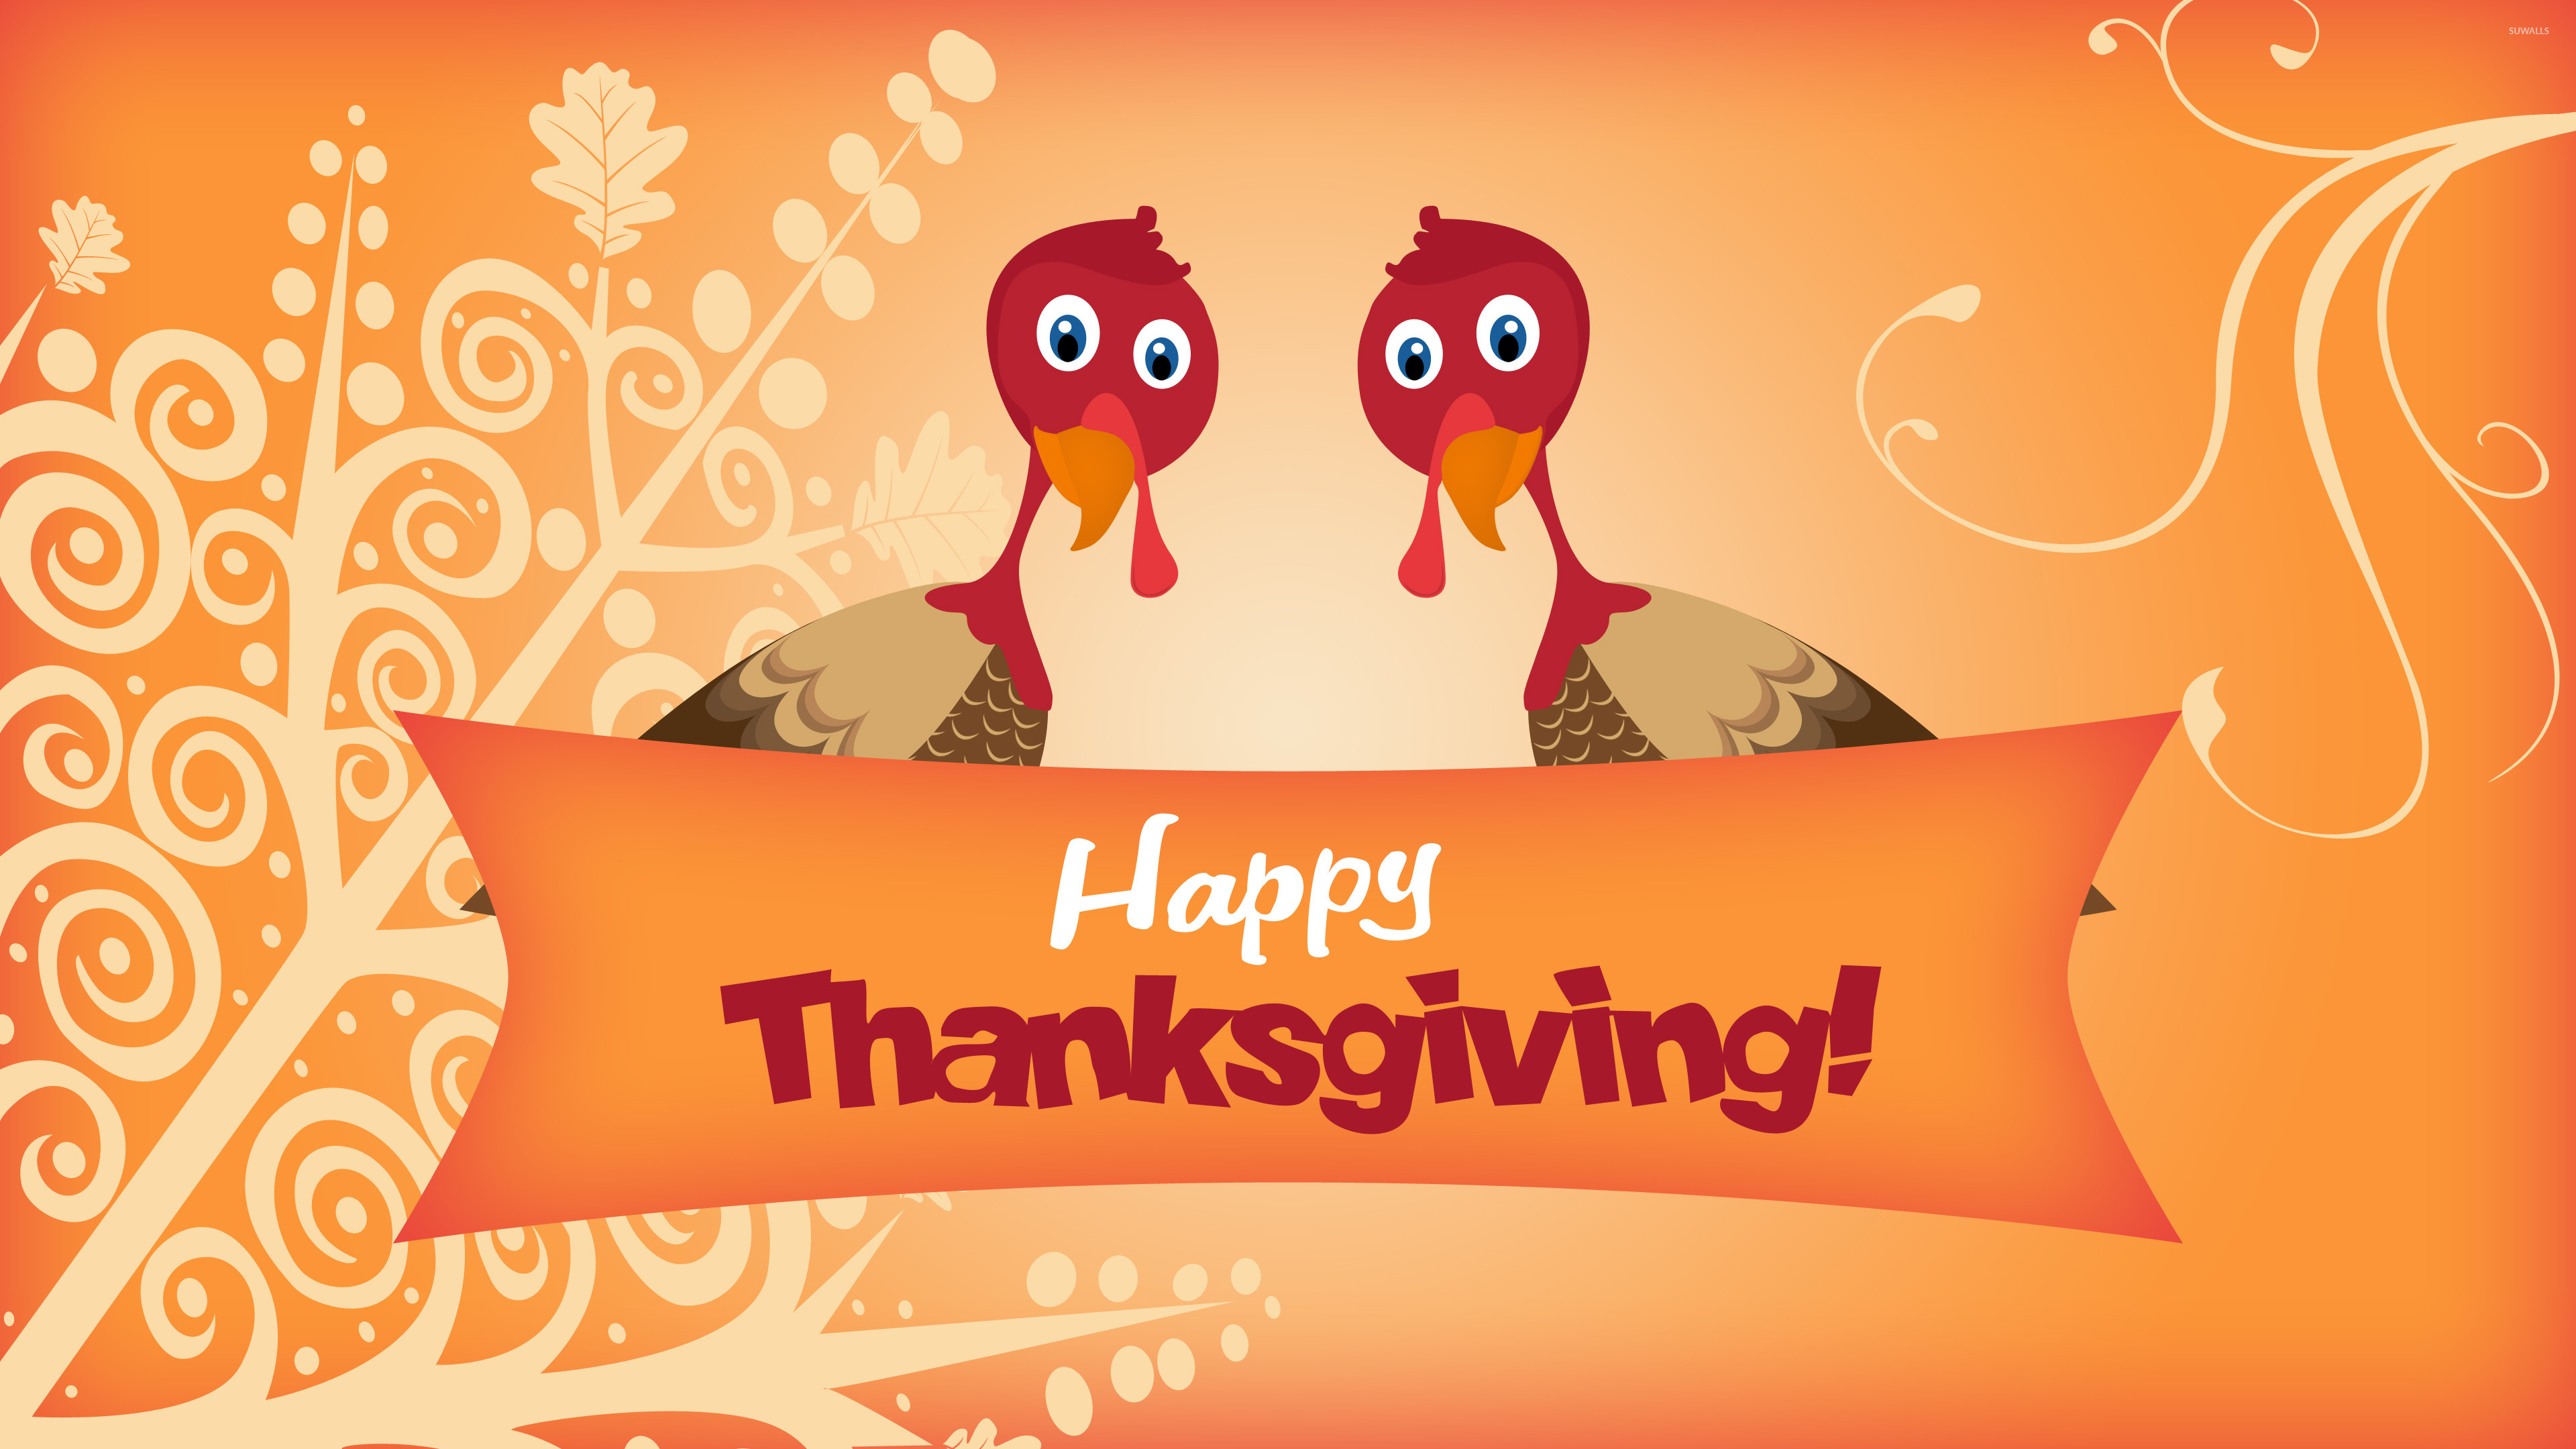 3840x2160 Two turkeys wishing you Happy Thanksgiving wallpaper  jpg